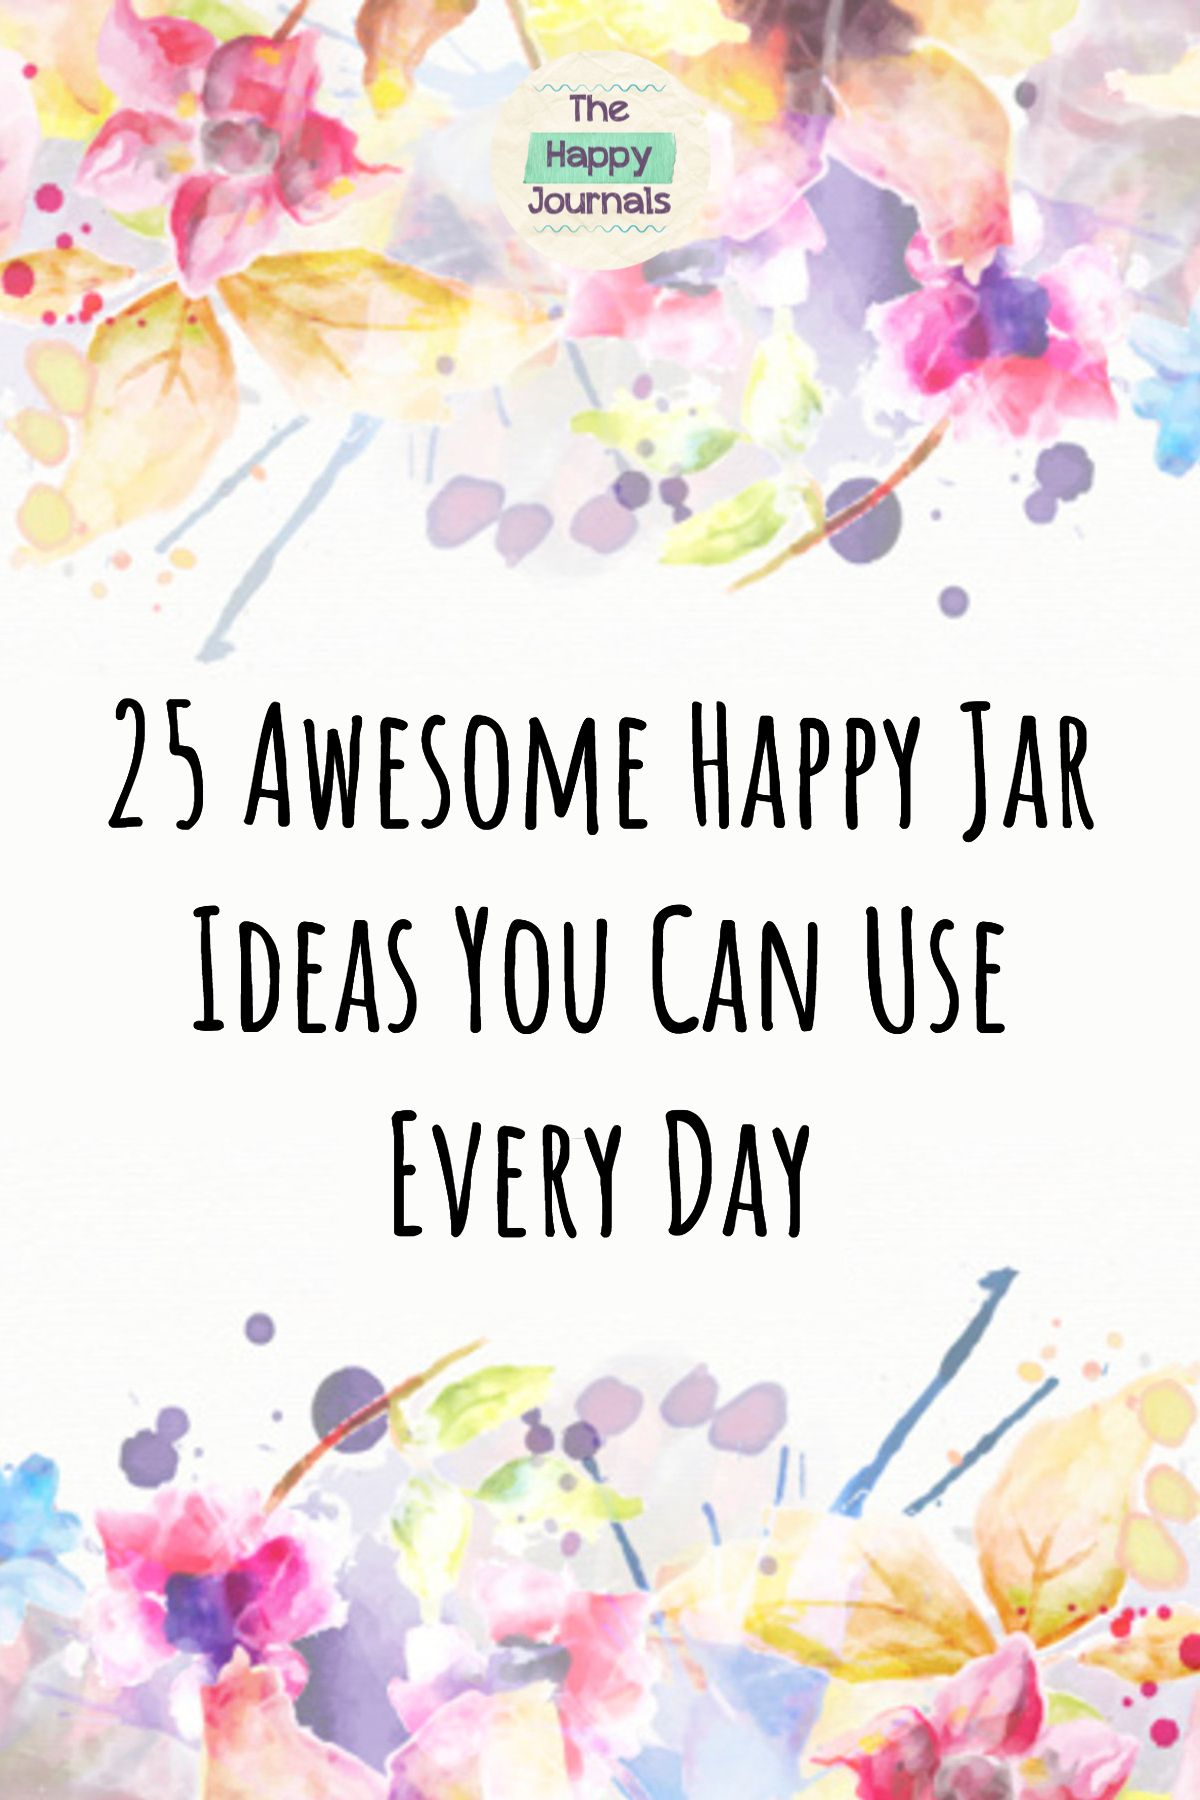 25 Awesome Happy Jar Ideas You Will Love The Happy Journals Happy Jar Happy Thoughts Inspiration Positive Thinking Tips